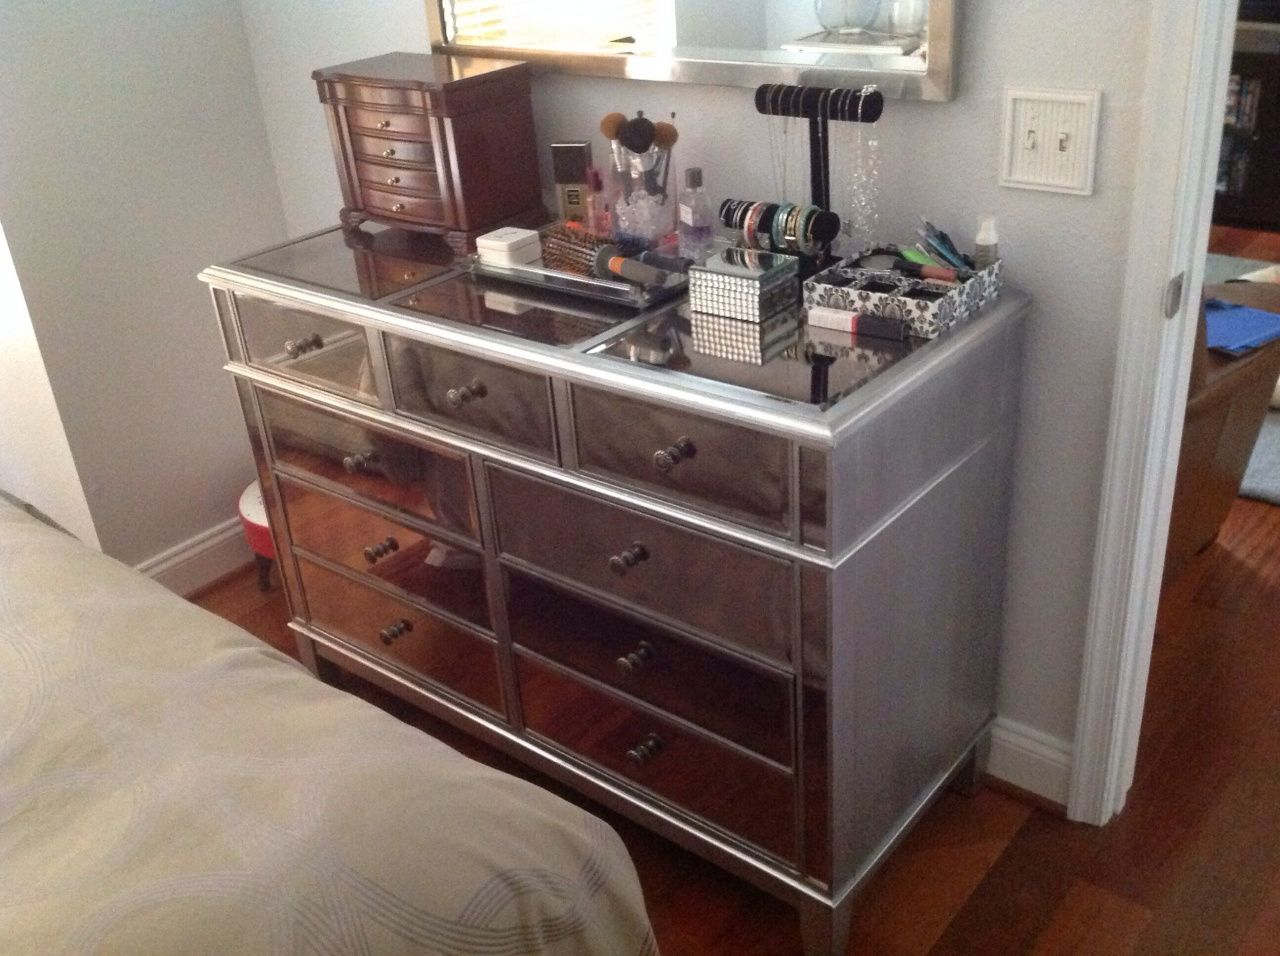 Mirrored Furniture Vanity To Mirrored Furniture Pier 1 Vanity Table One Rustic Home Office Check Mirrored Furniture Pier Toocleco